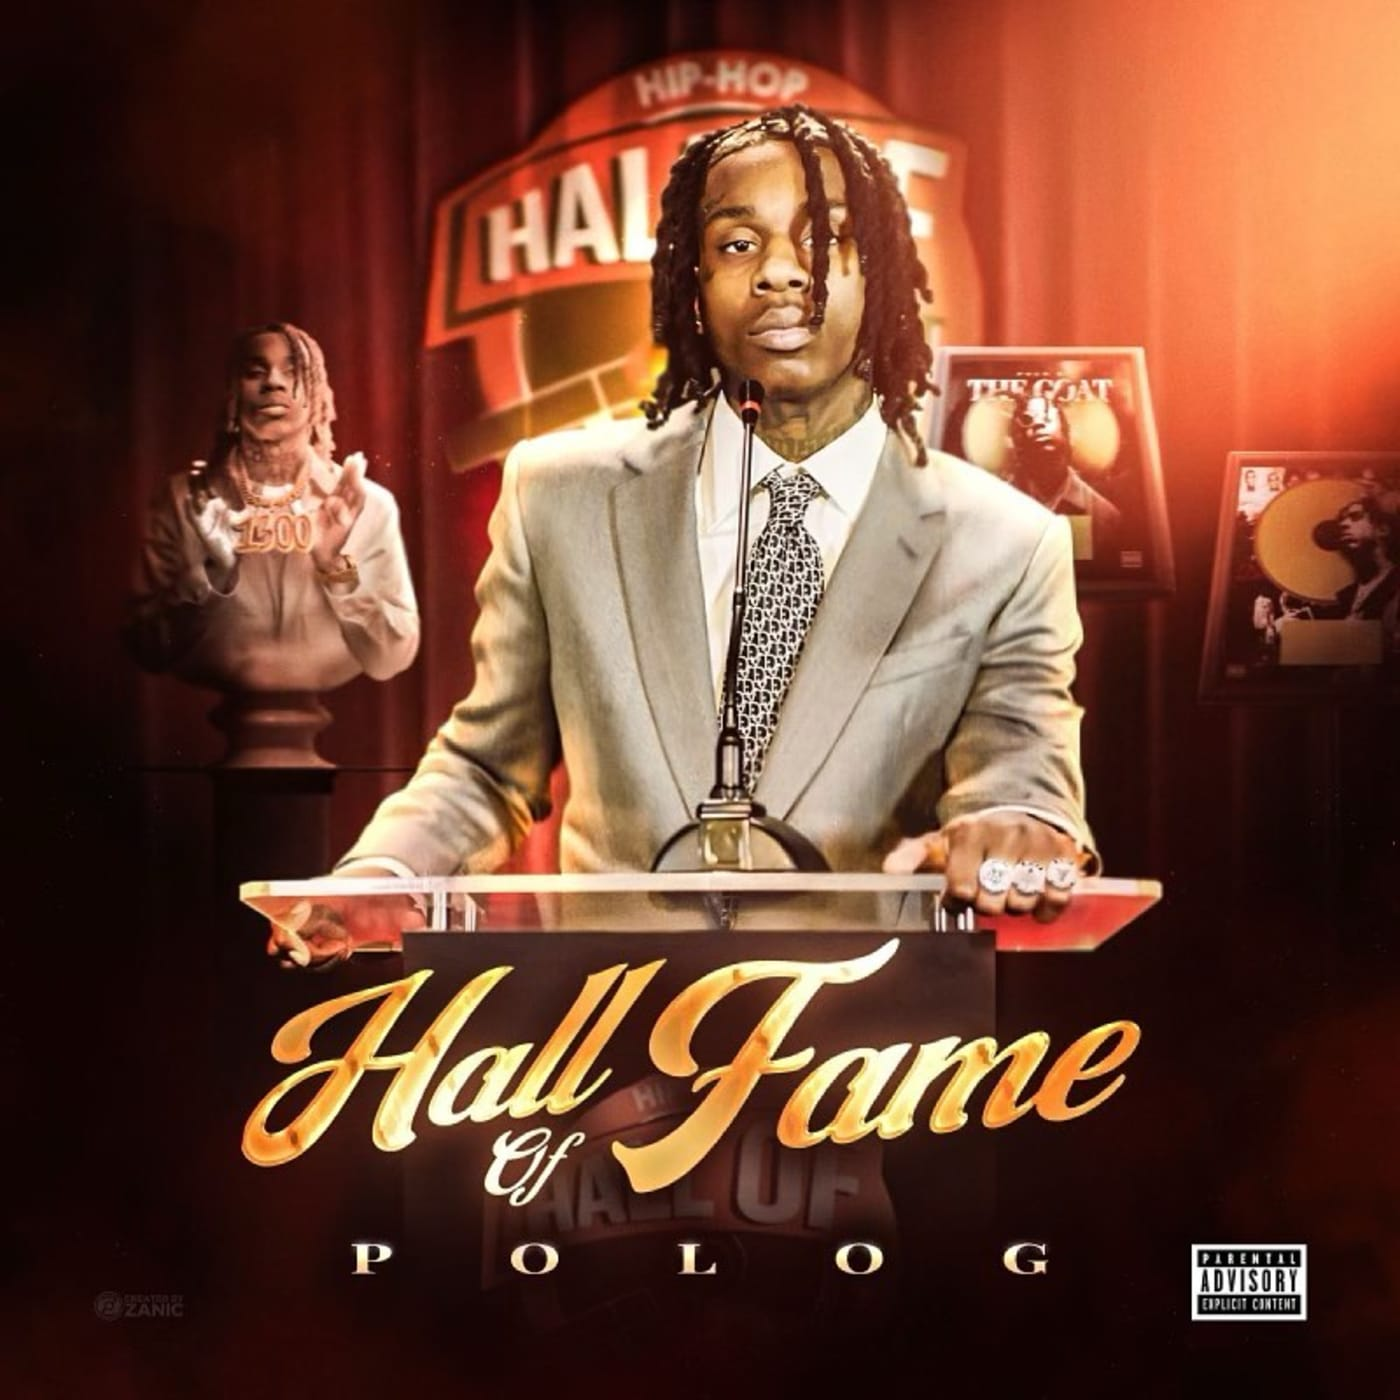 polo g rapper pop smoke dababy facts interview cool interesting chicago hip hop album age height name